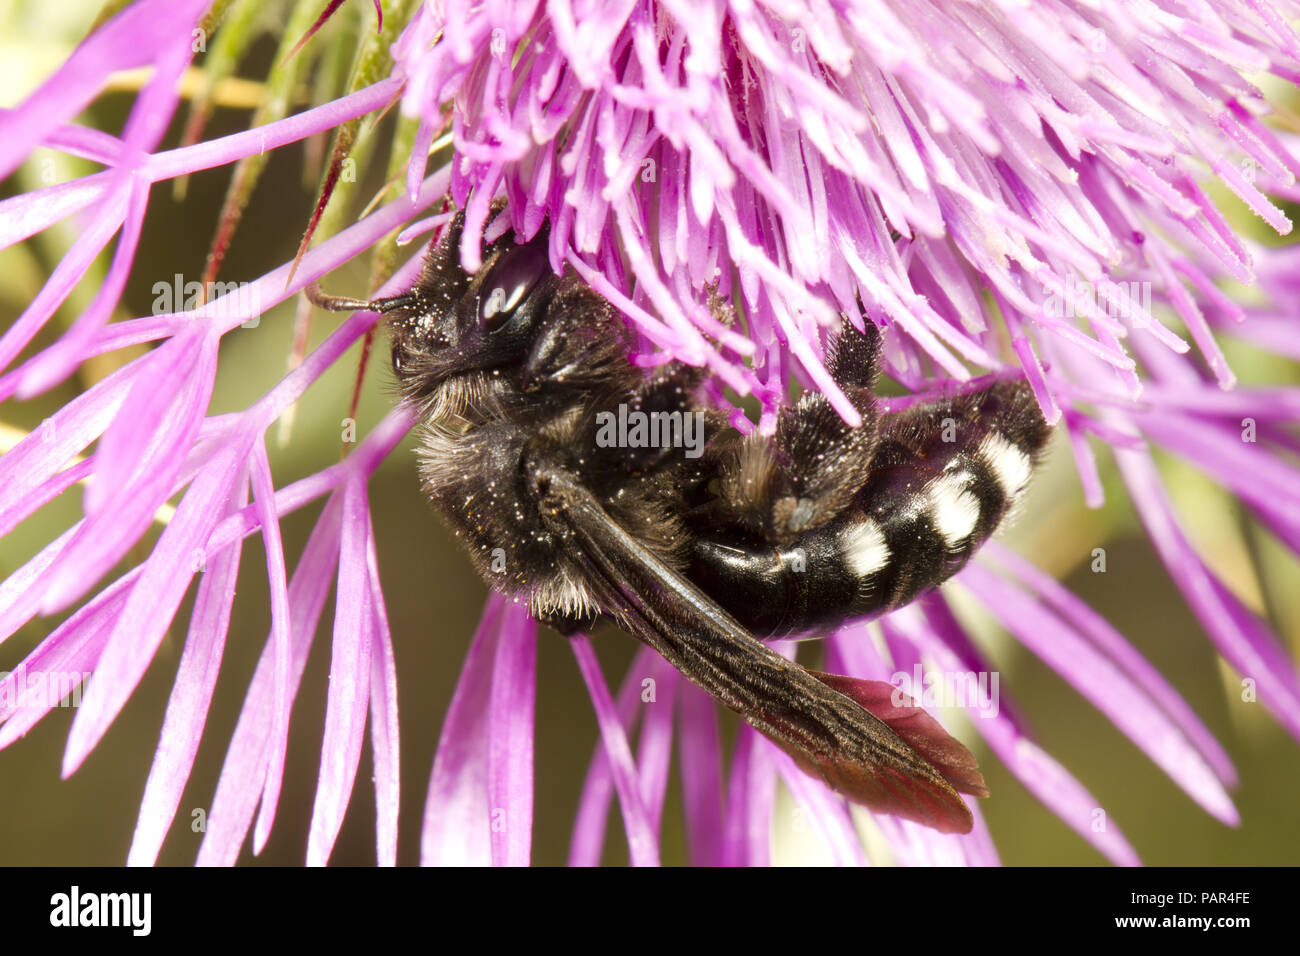 Mourning bee (Melecta sp.) adult female feeding on a thistle flower. Cha'ne des Alpilles, Bouches-du-Rh'ne, France. May. - Stock Image